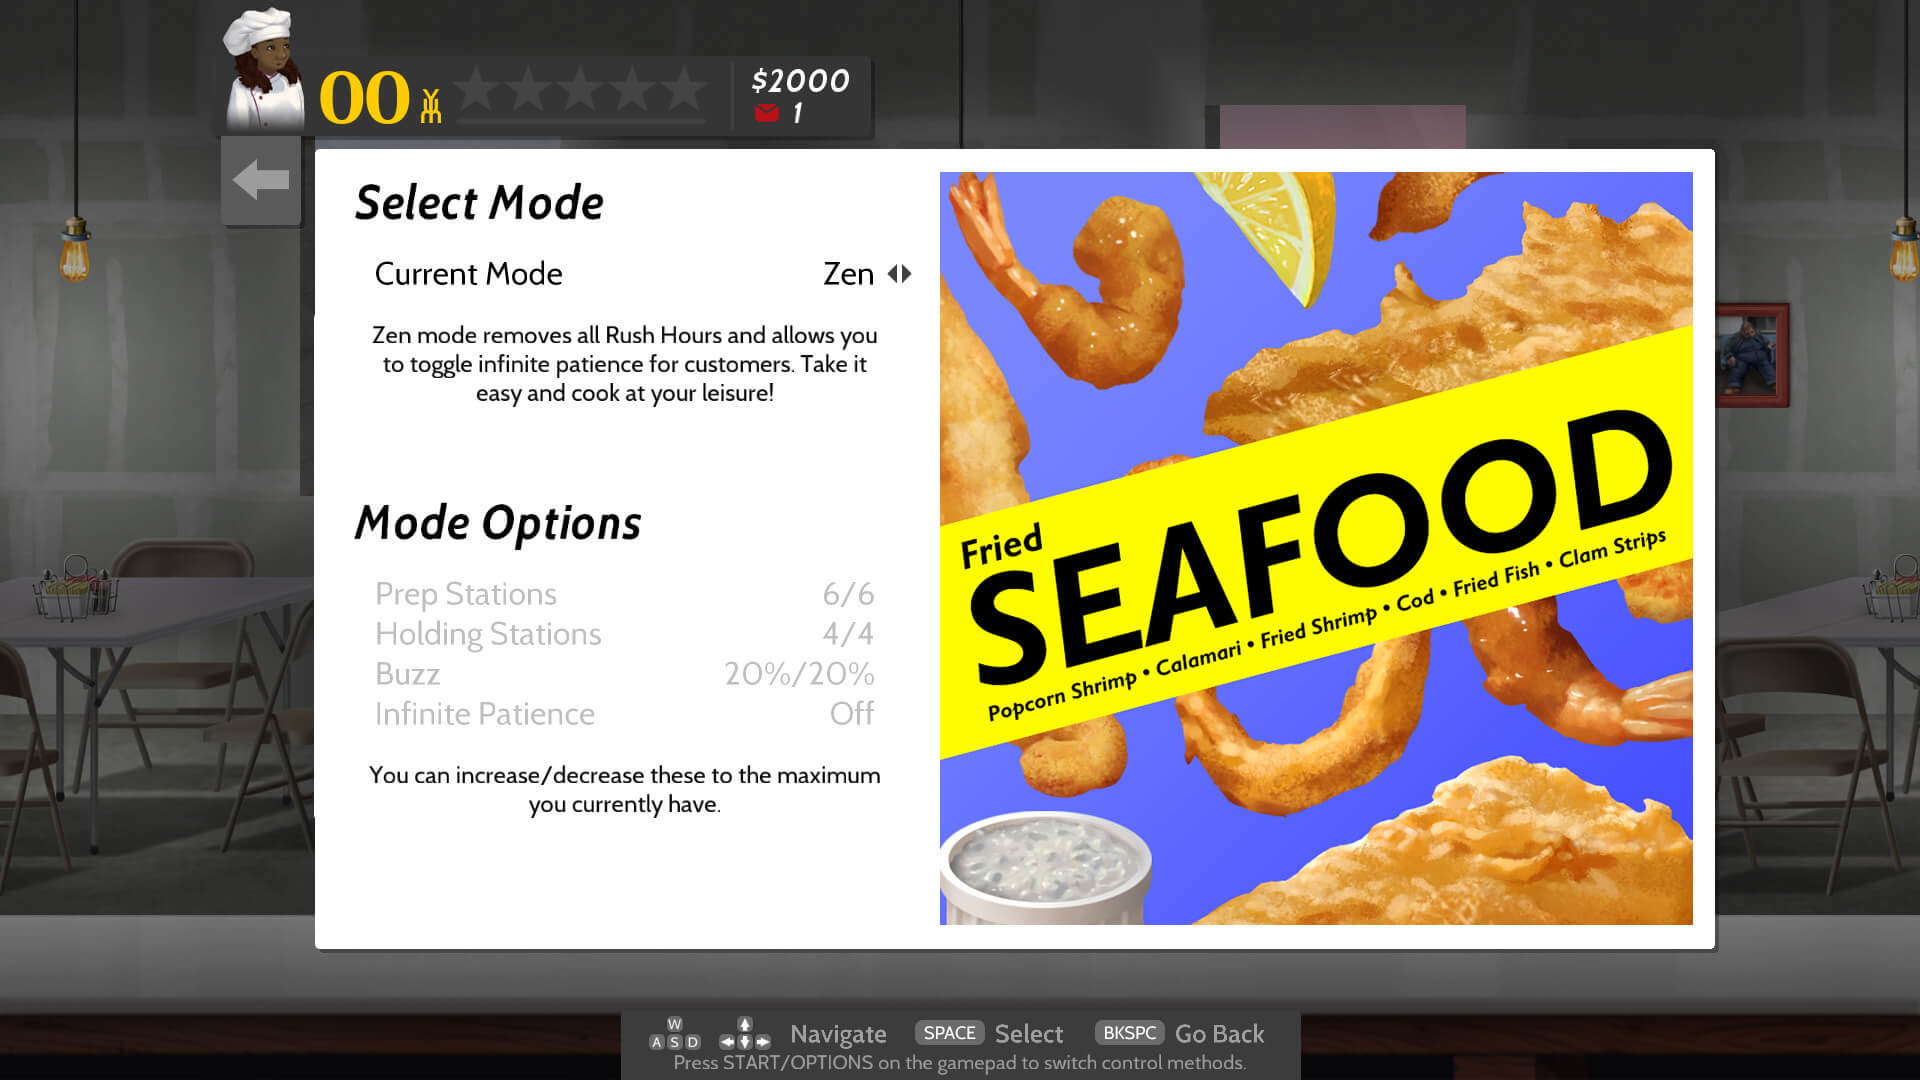 Cook, Serve, Delicious 2 Seafood